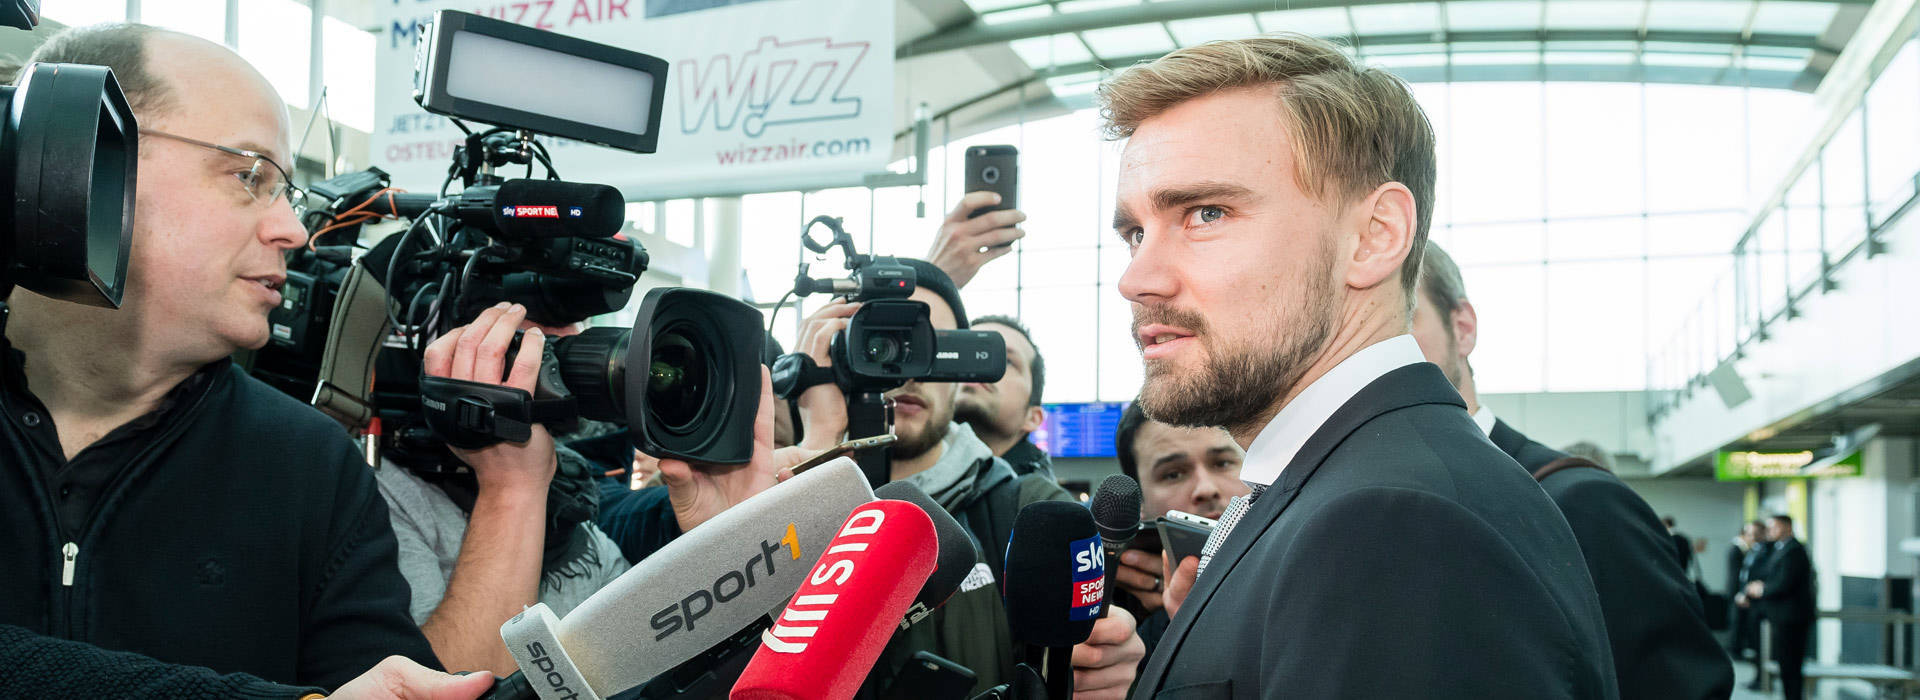 Schmelzer on Italy-bound plane